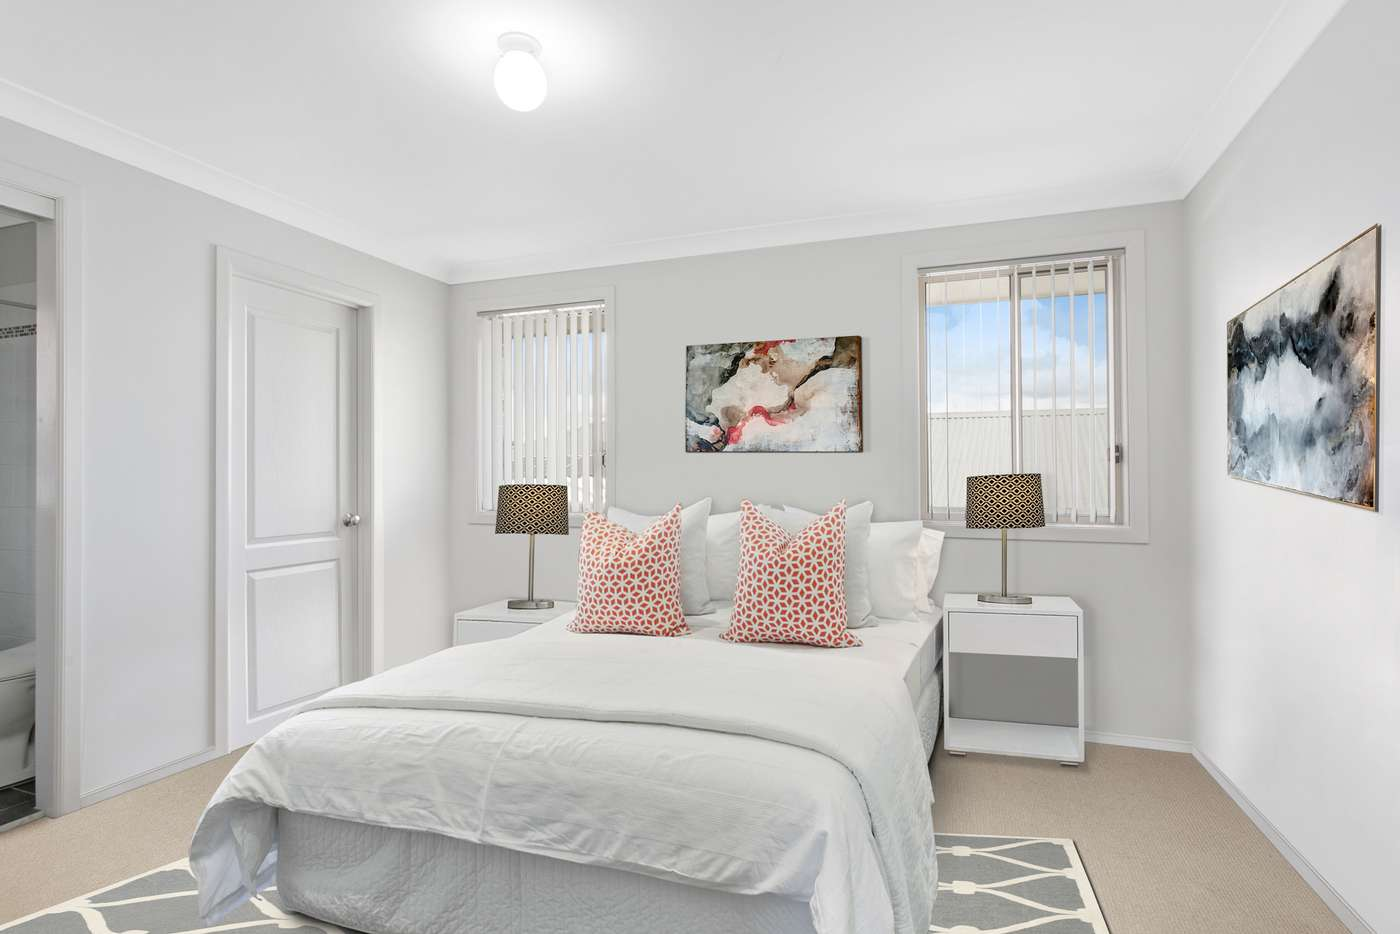 Fifth view of Homely house listing, 1 Tipperary Drive, Ashtonfield NSW 2323